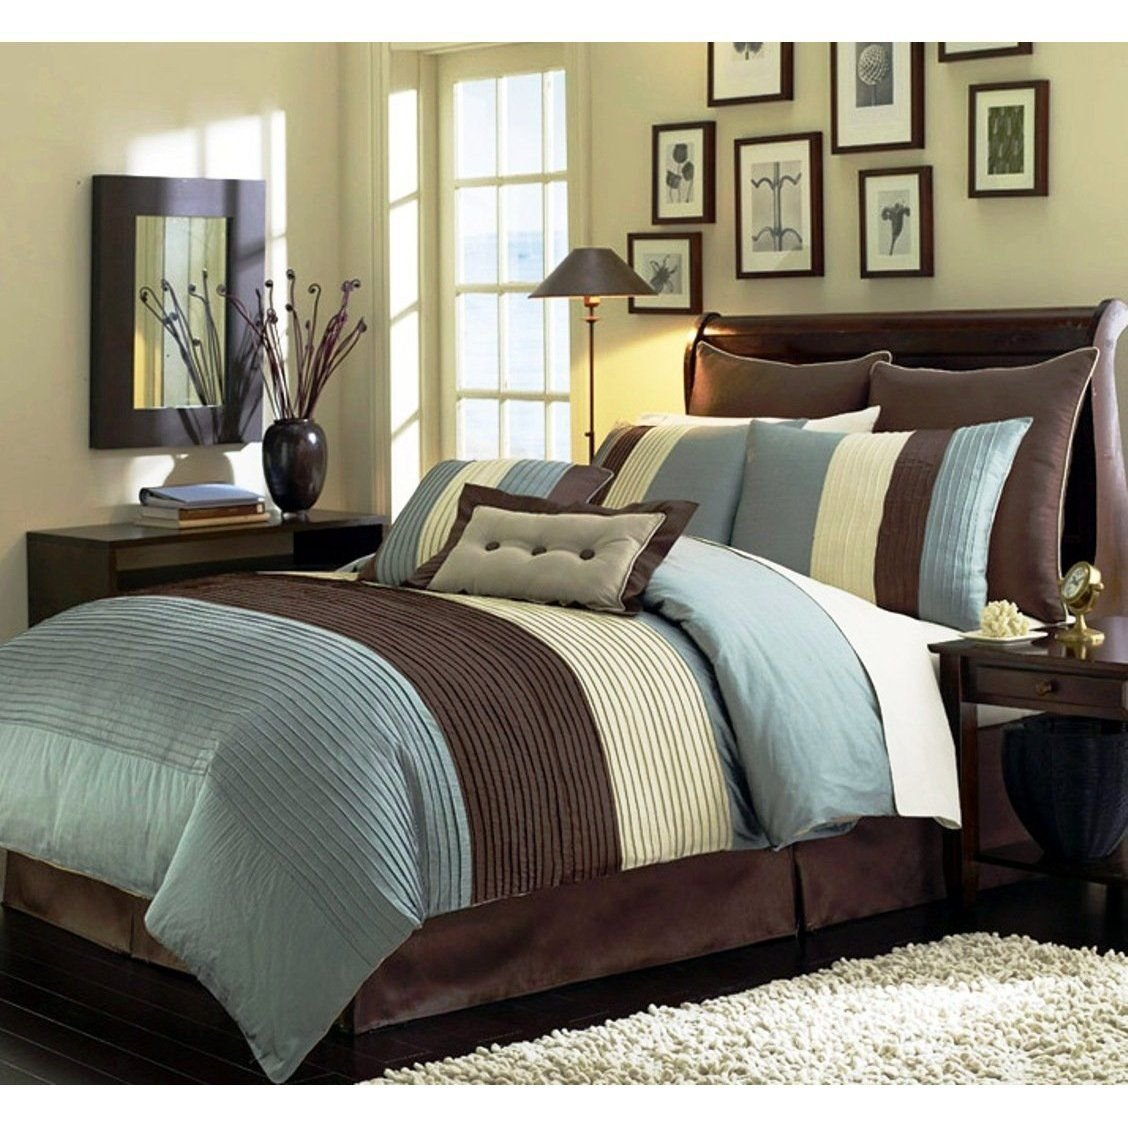 Chevron Comforter | Comforter Sets For Queen Size Beds | Queen Size Bedding Sets